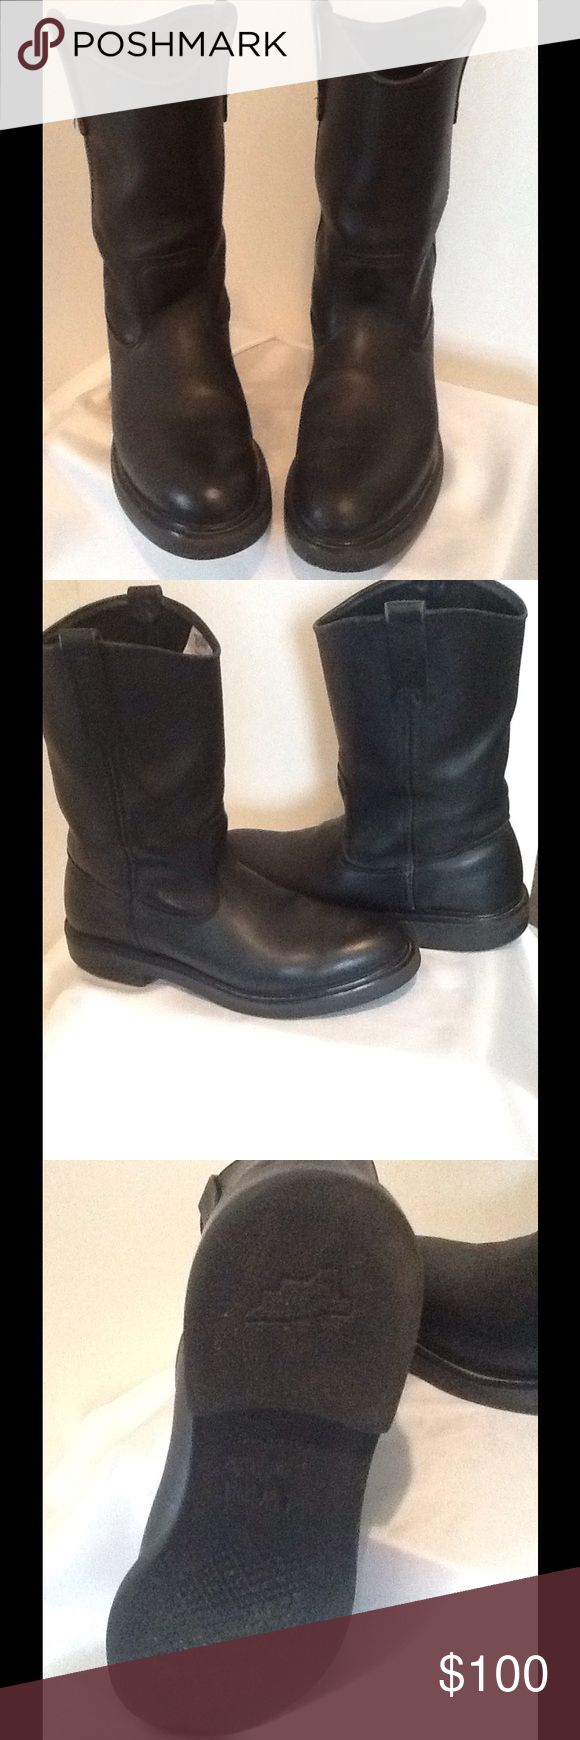 Men's Red Wing Pecos Boots (USED) Red Wing Pecos Non Steel toe black boots used but in good condition shows some wear. Size 10.5 B Red Wing Shoes Boots